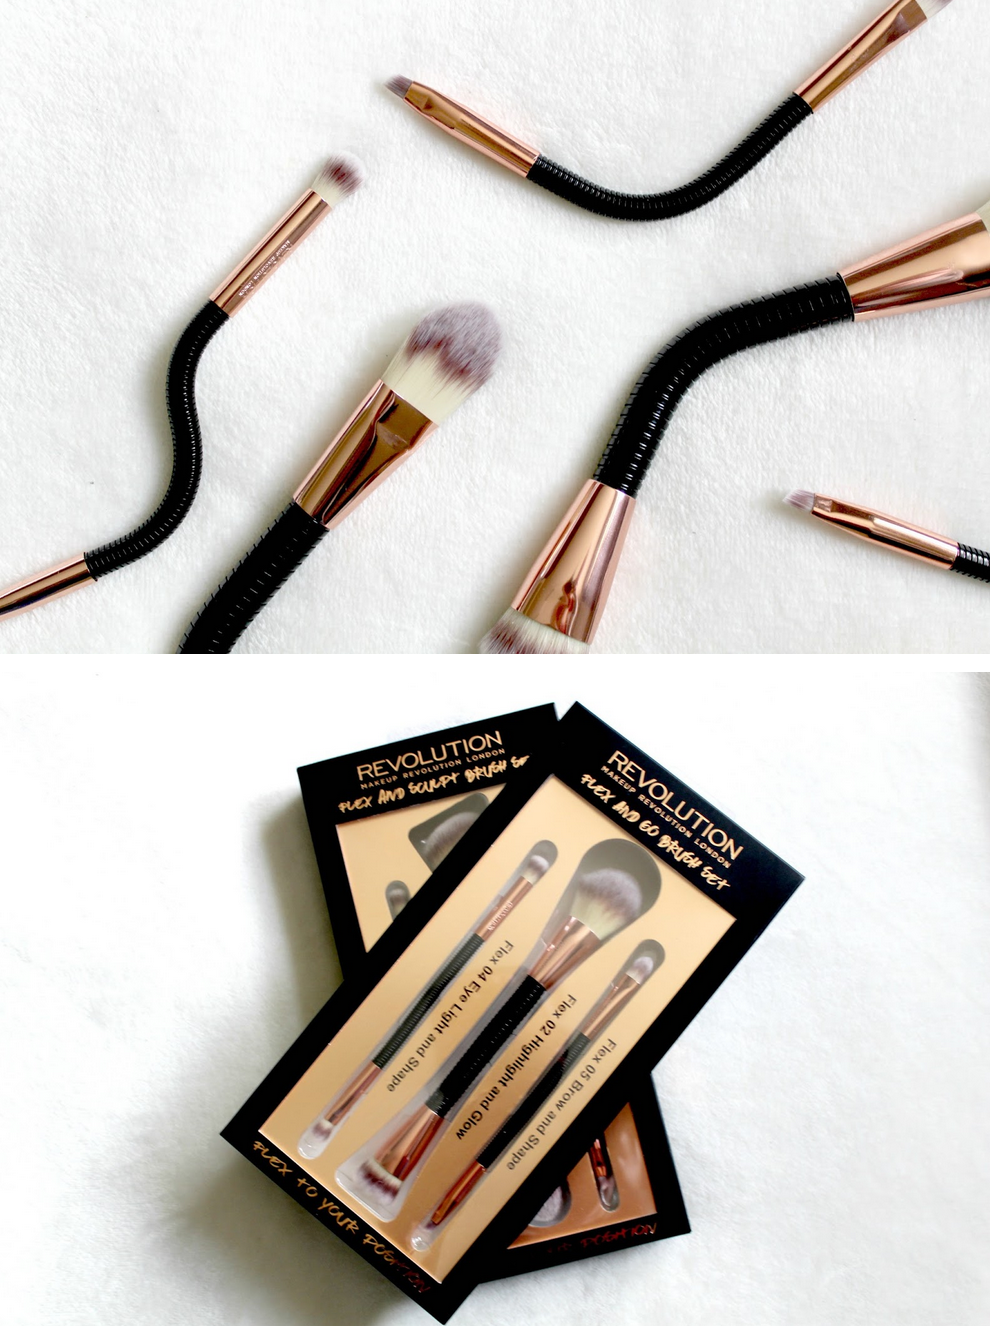 Makeup Revolution Flex Brush Entire Collection $44.80   This full set of flexible brushes makes it less painful to apply make up with arthritis, and other dexterity challenges.